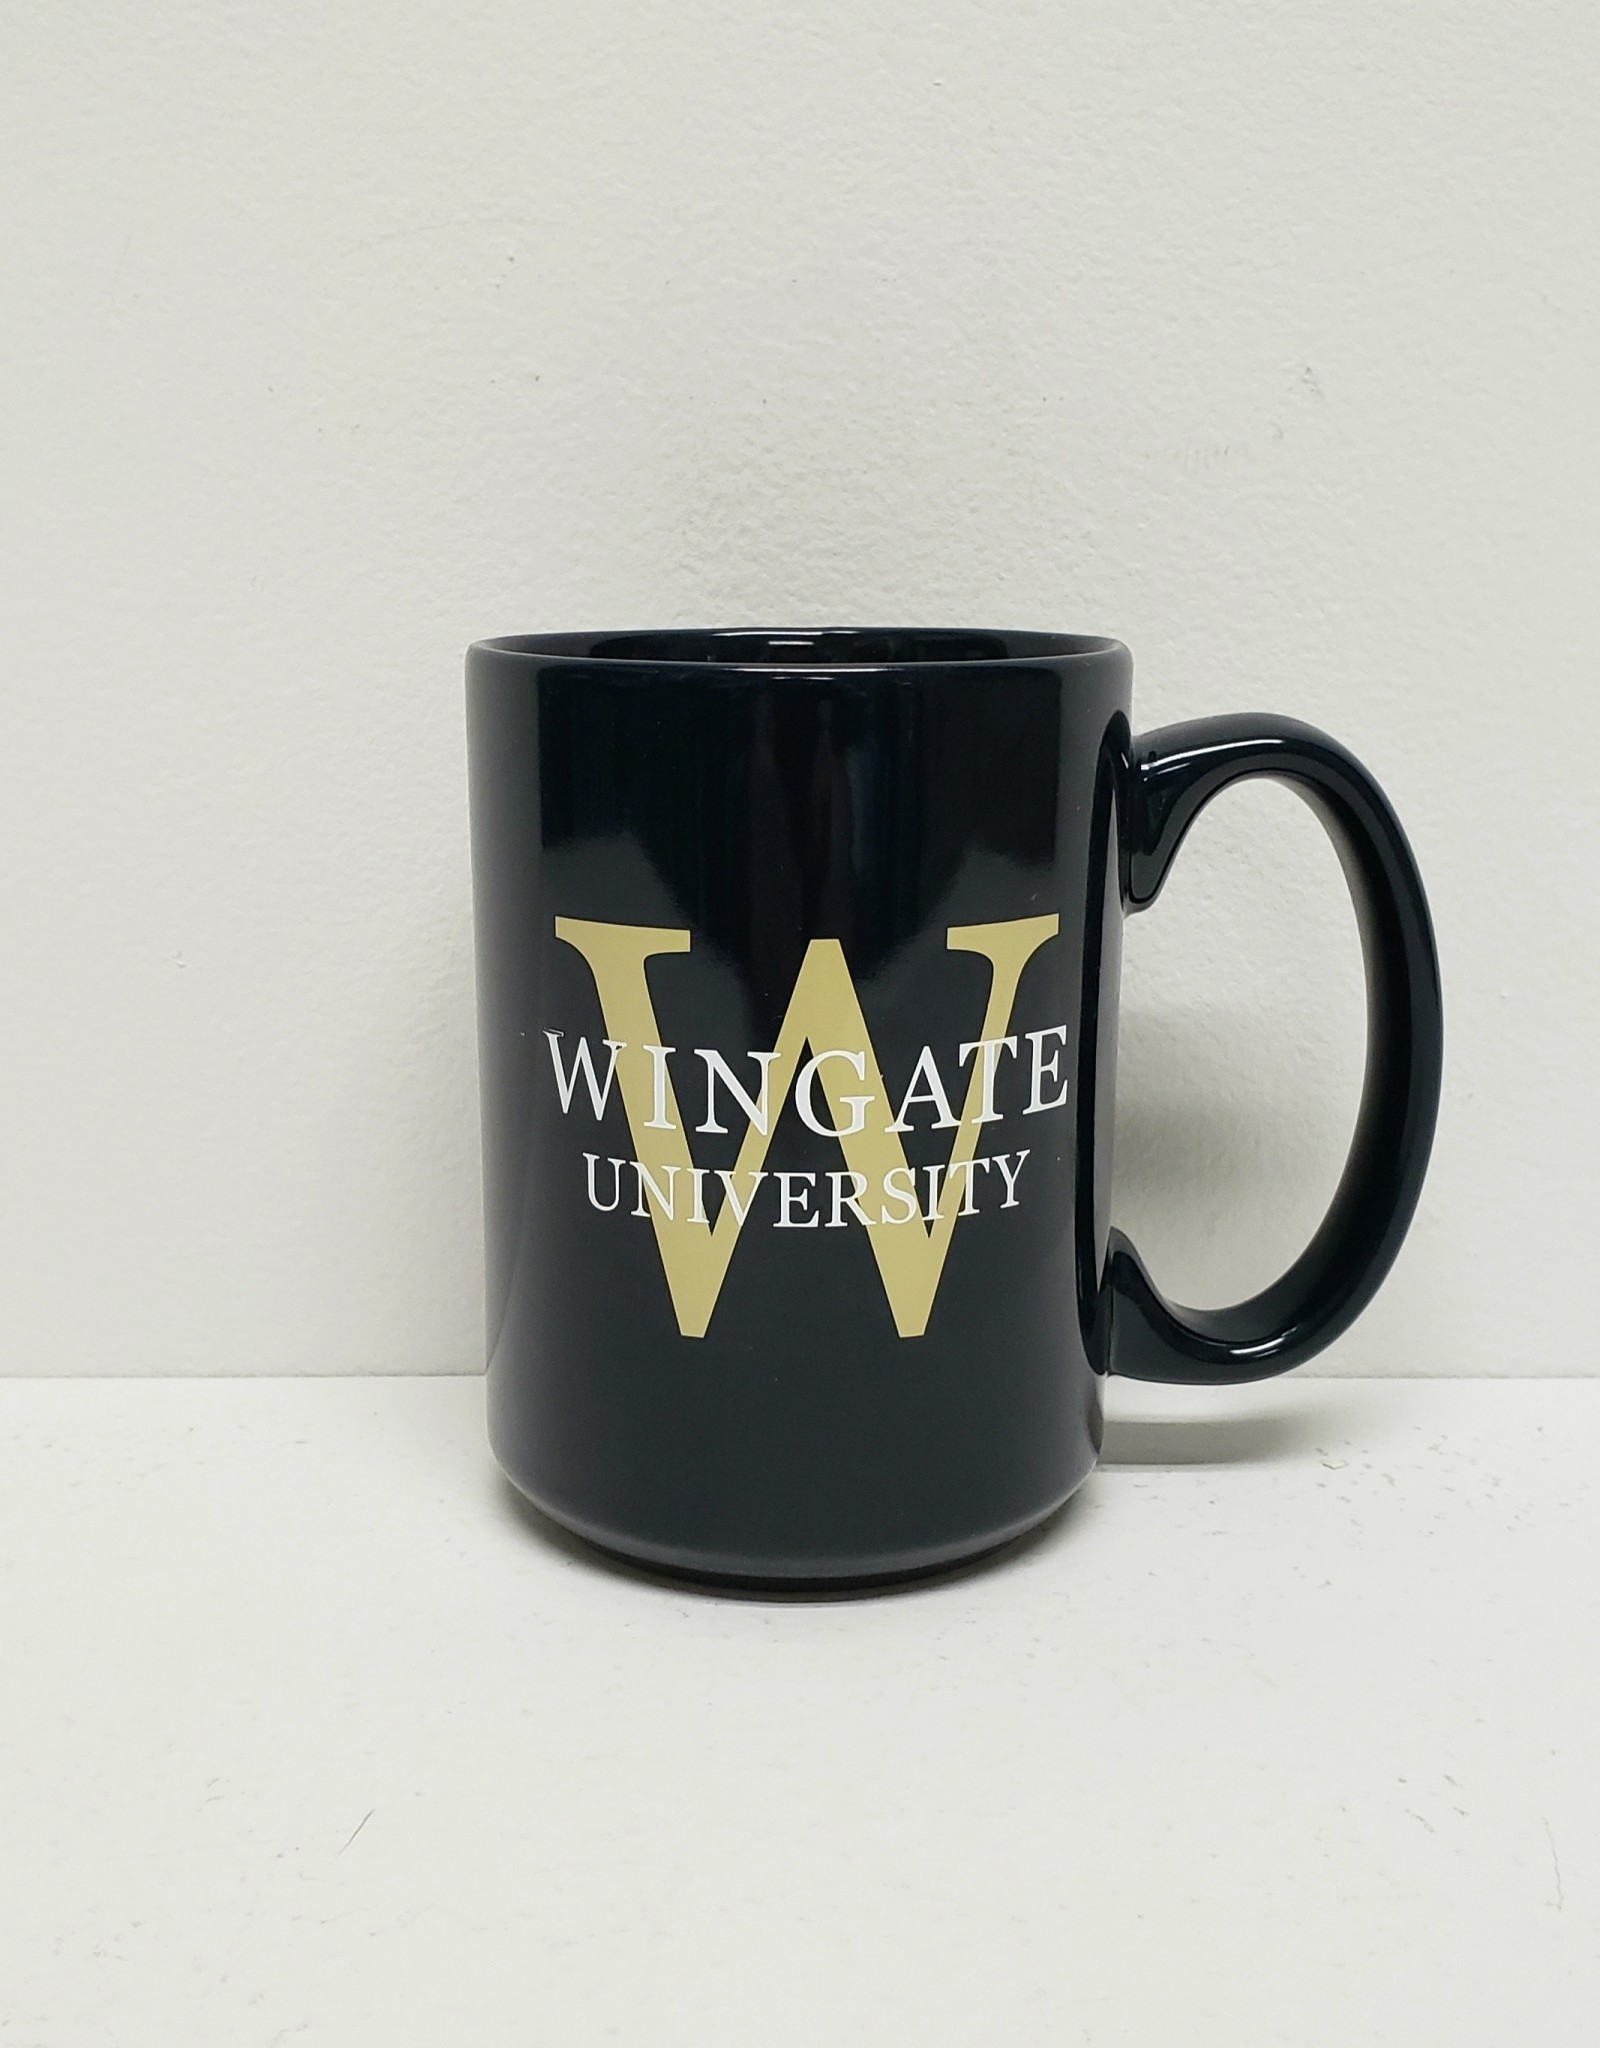 16oz El Grande mug Navy with Gold and White Wingate University and W